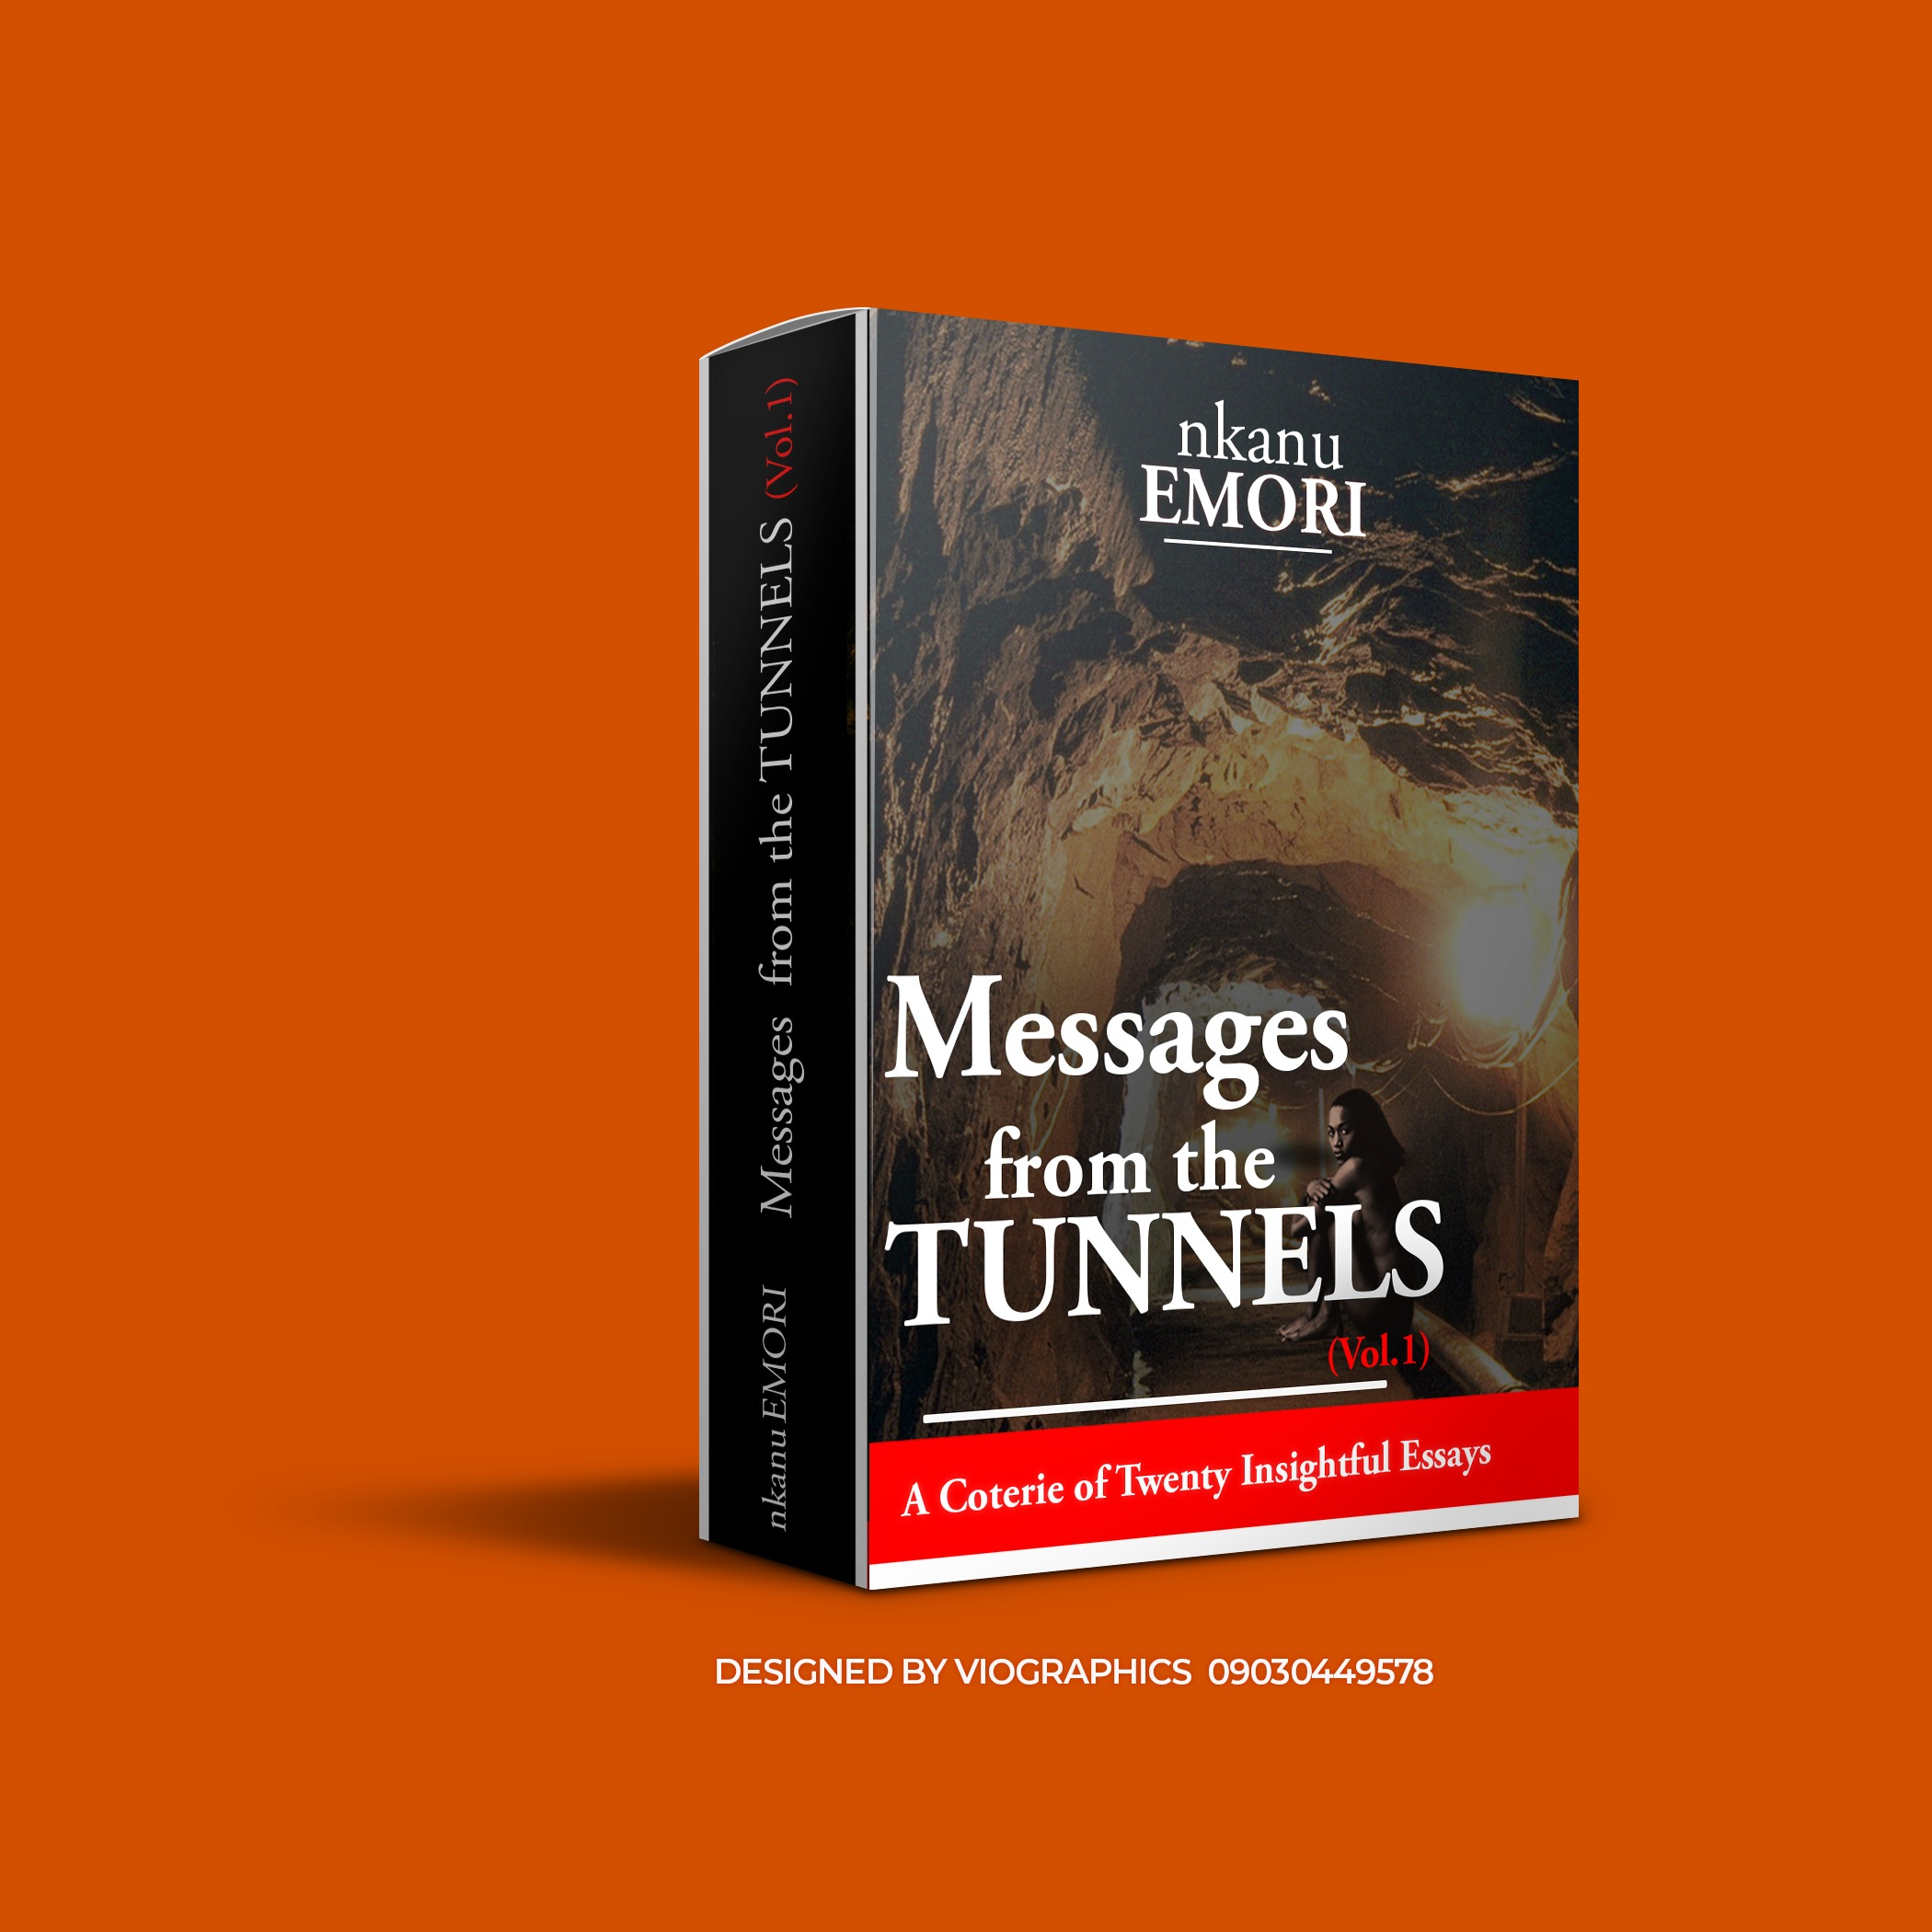 MESSAGES FROM THE TUNNELS (VOL.1)